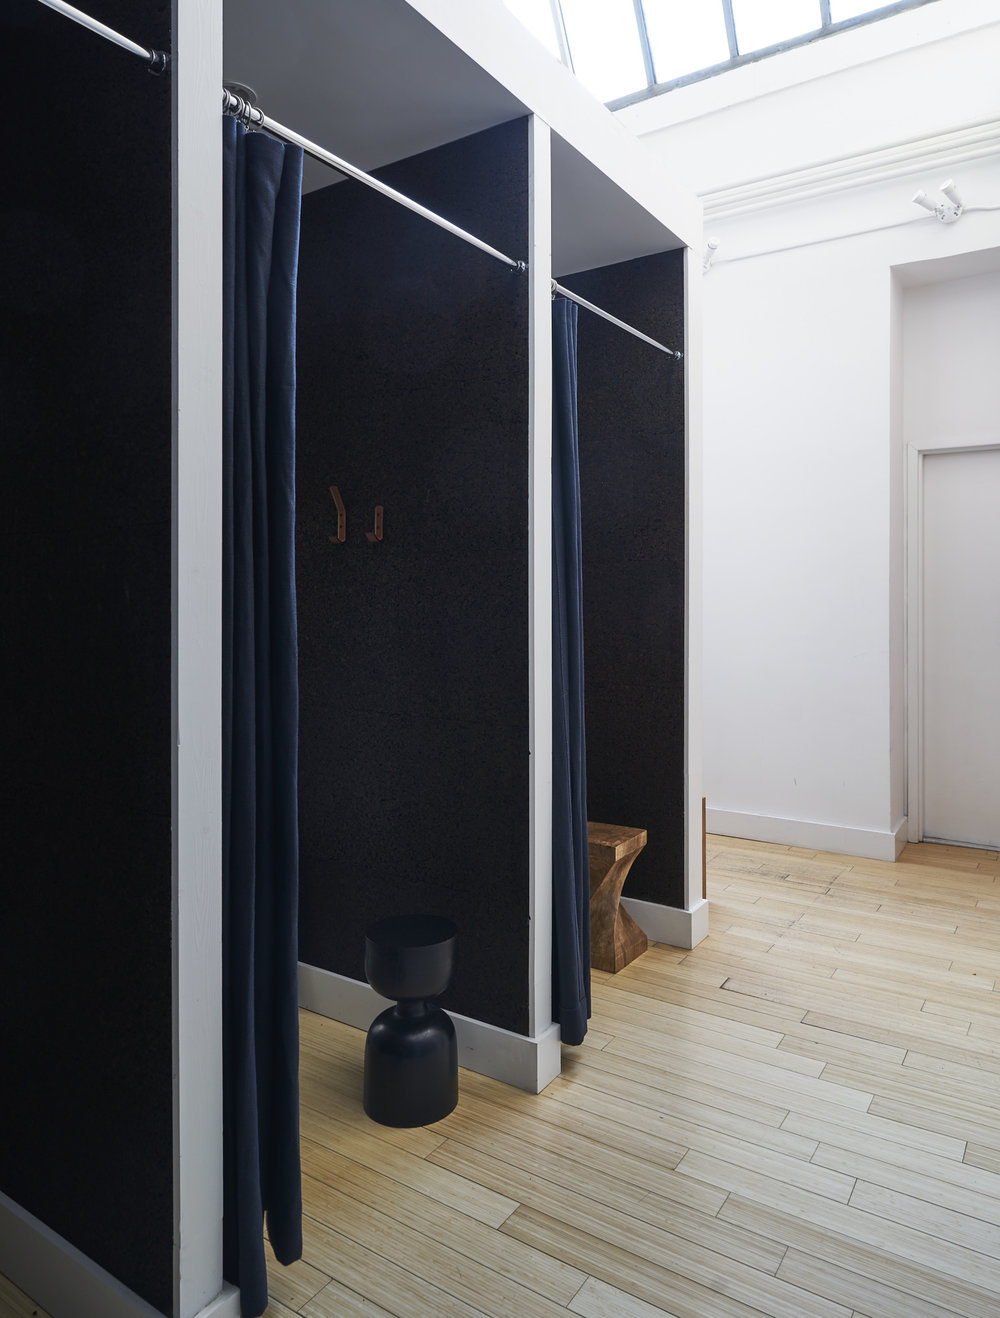 Changing room in a modern workout space and Pilates studio in Chelsea, NY